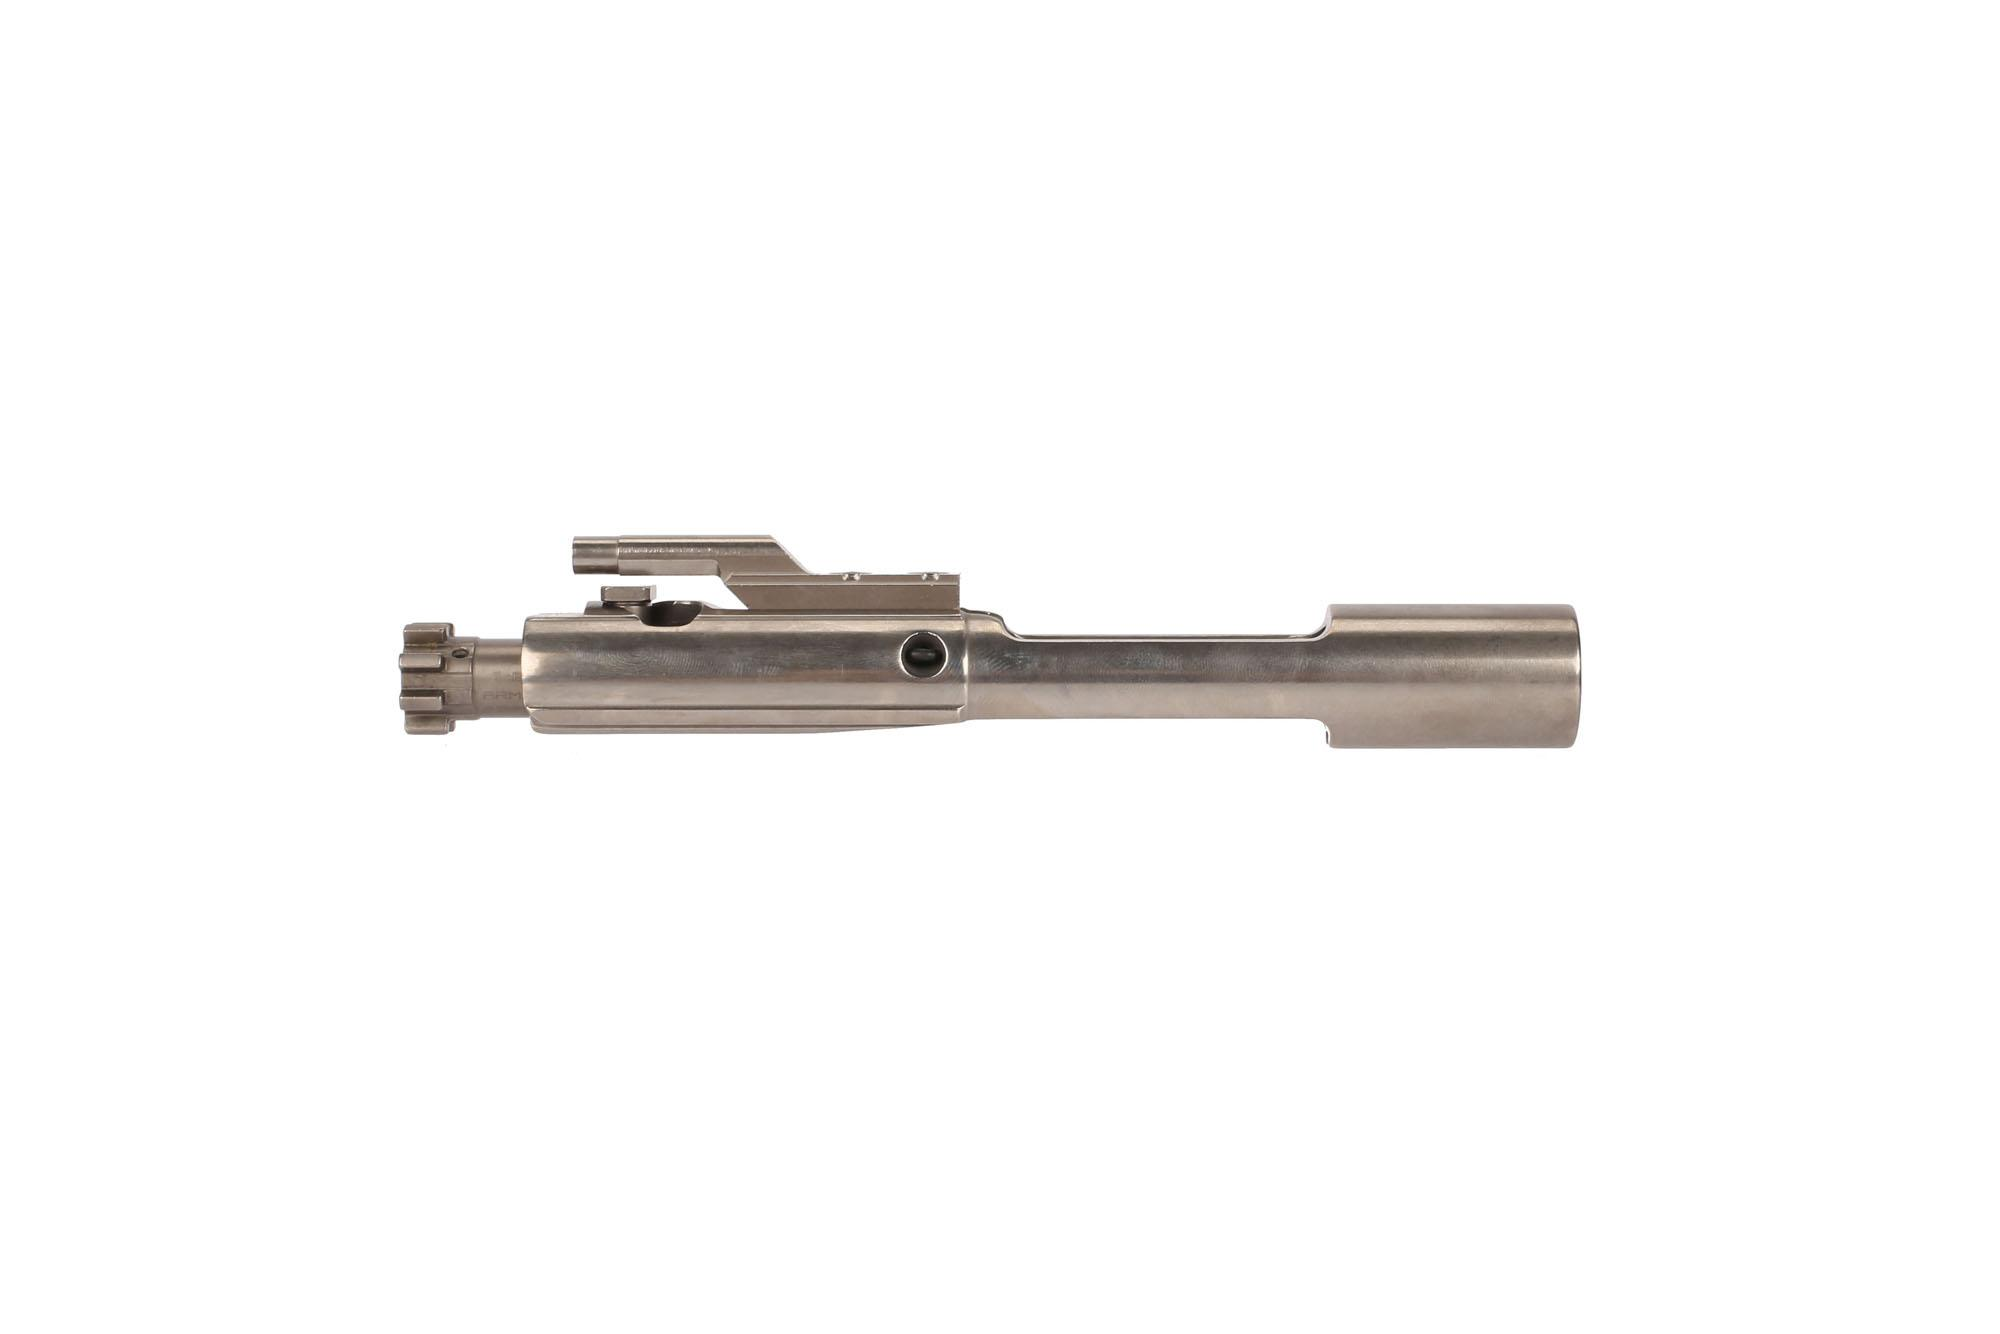 A*B Arms Pro 5.56 NATO Bolt Carrier Group - Nickel Boron